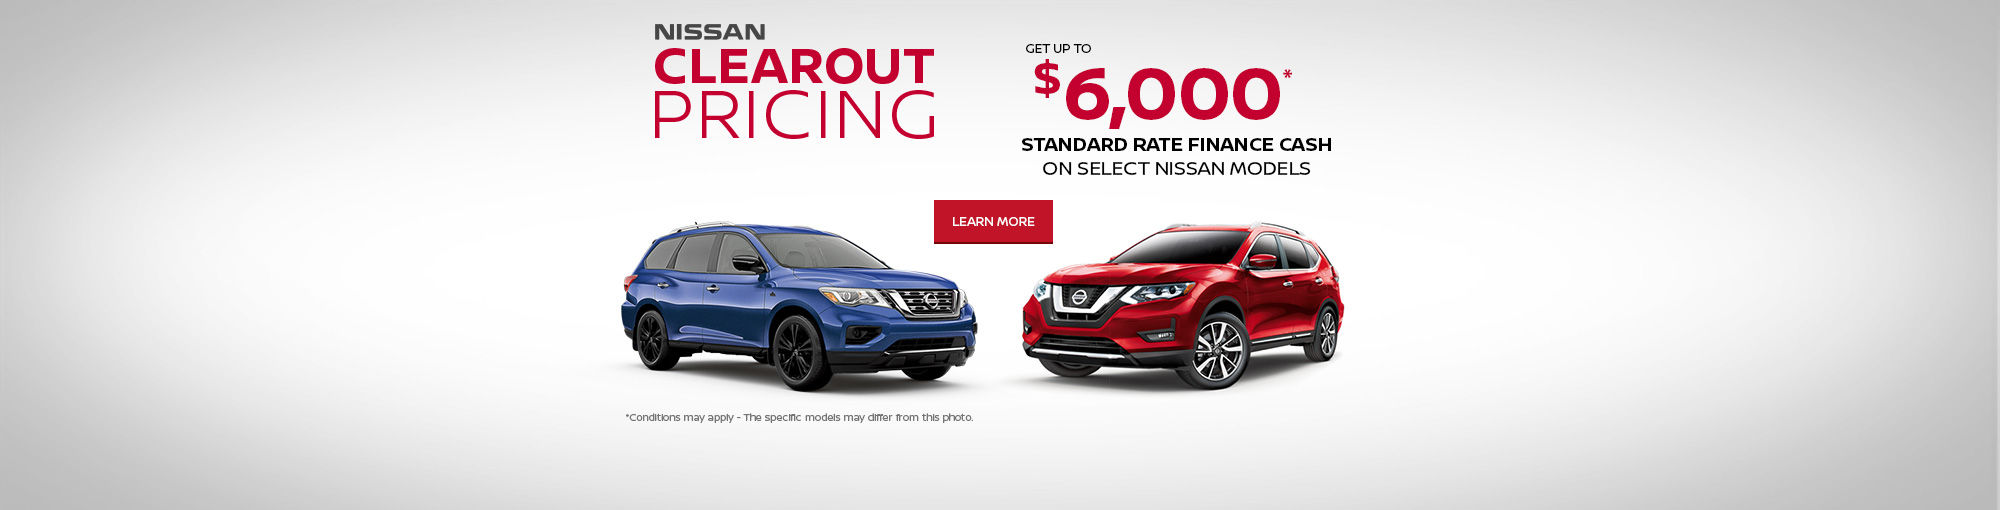 Nissan Clearout Pricing